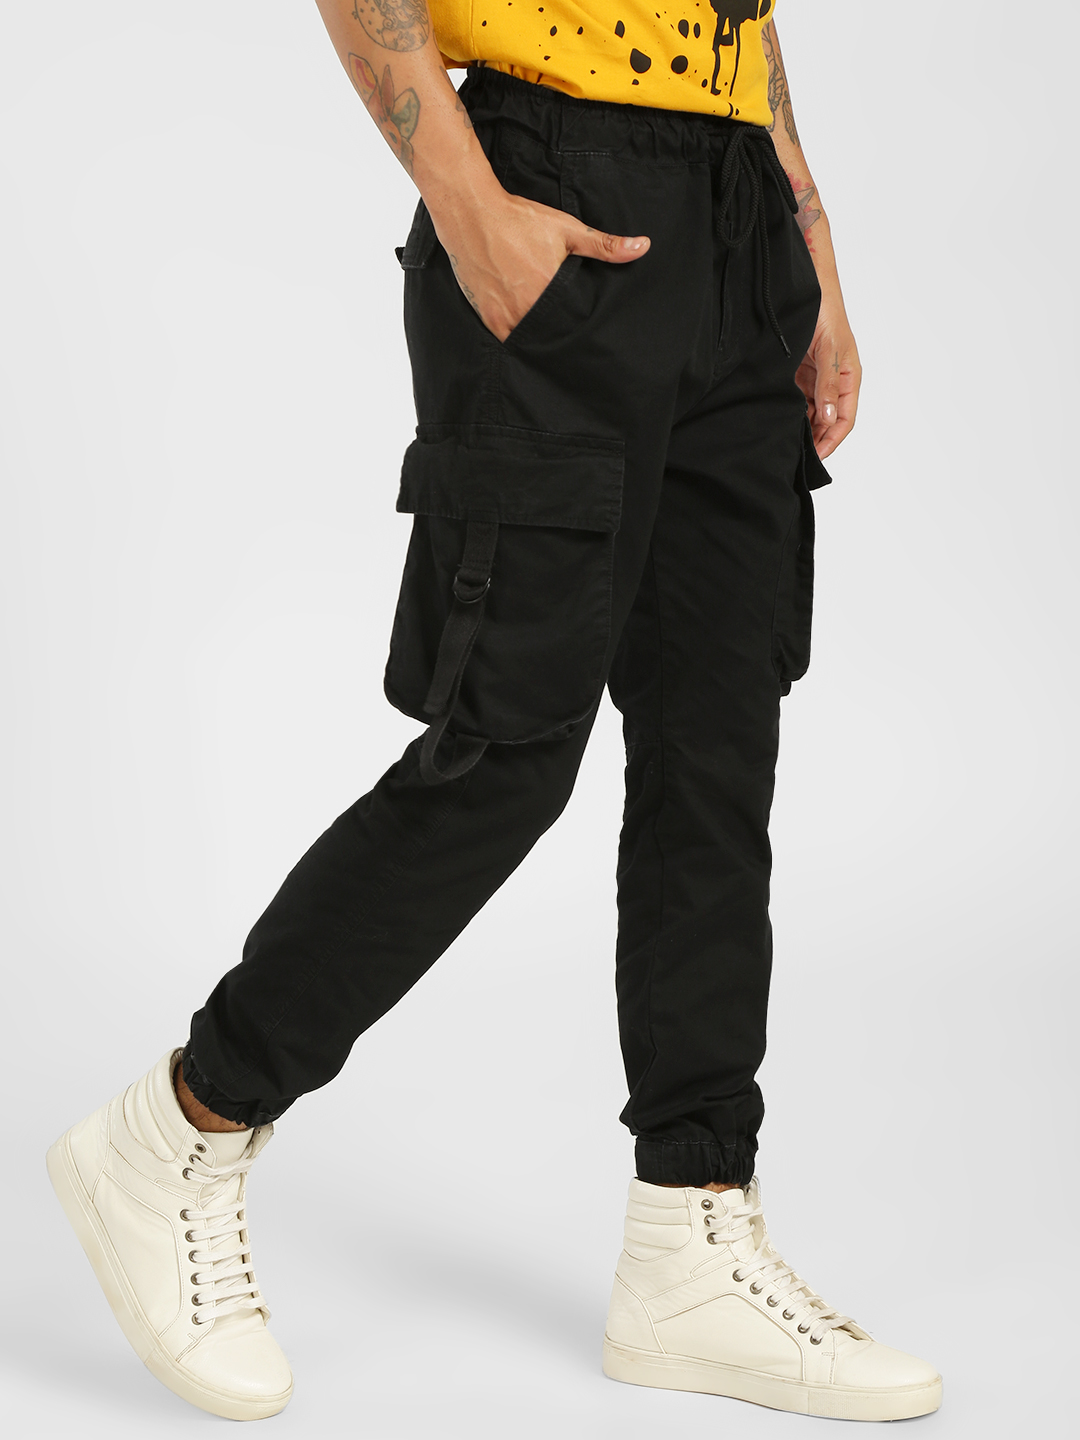 SKULT By Shahid Kapoor Black Cropped Patch Pocket Joggers 1